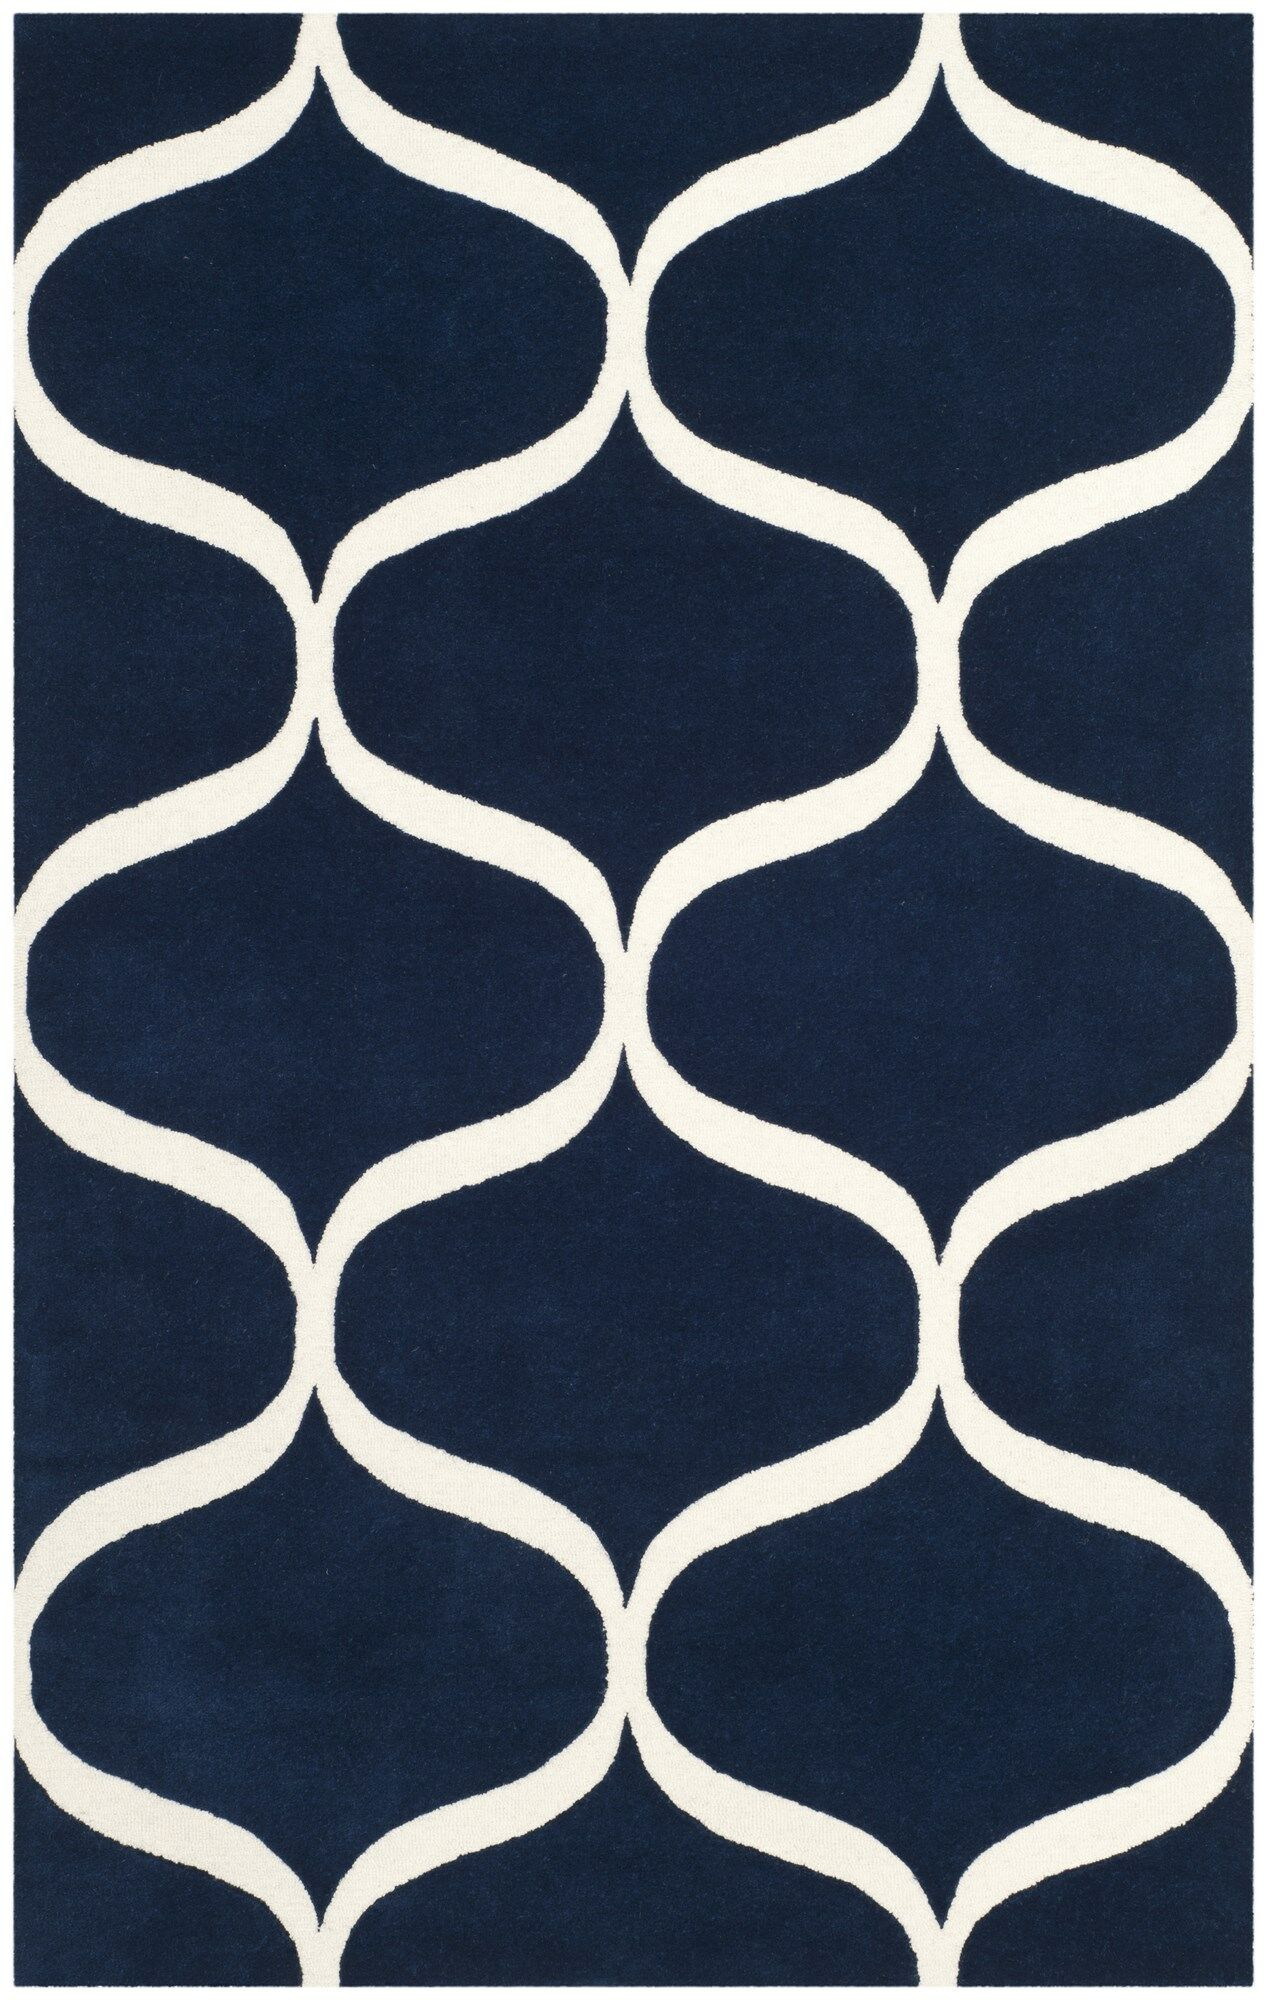 Martins Hand-Tufted Dark Blue/Ivory Area Rug Rug Size: Square 6' x 6'